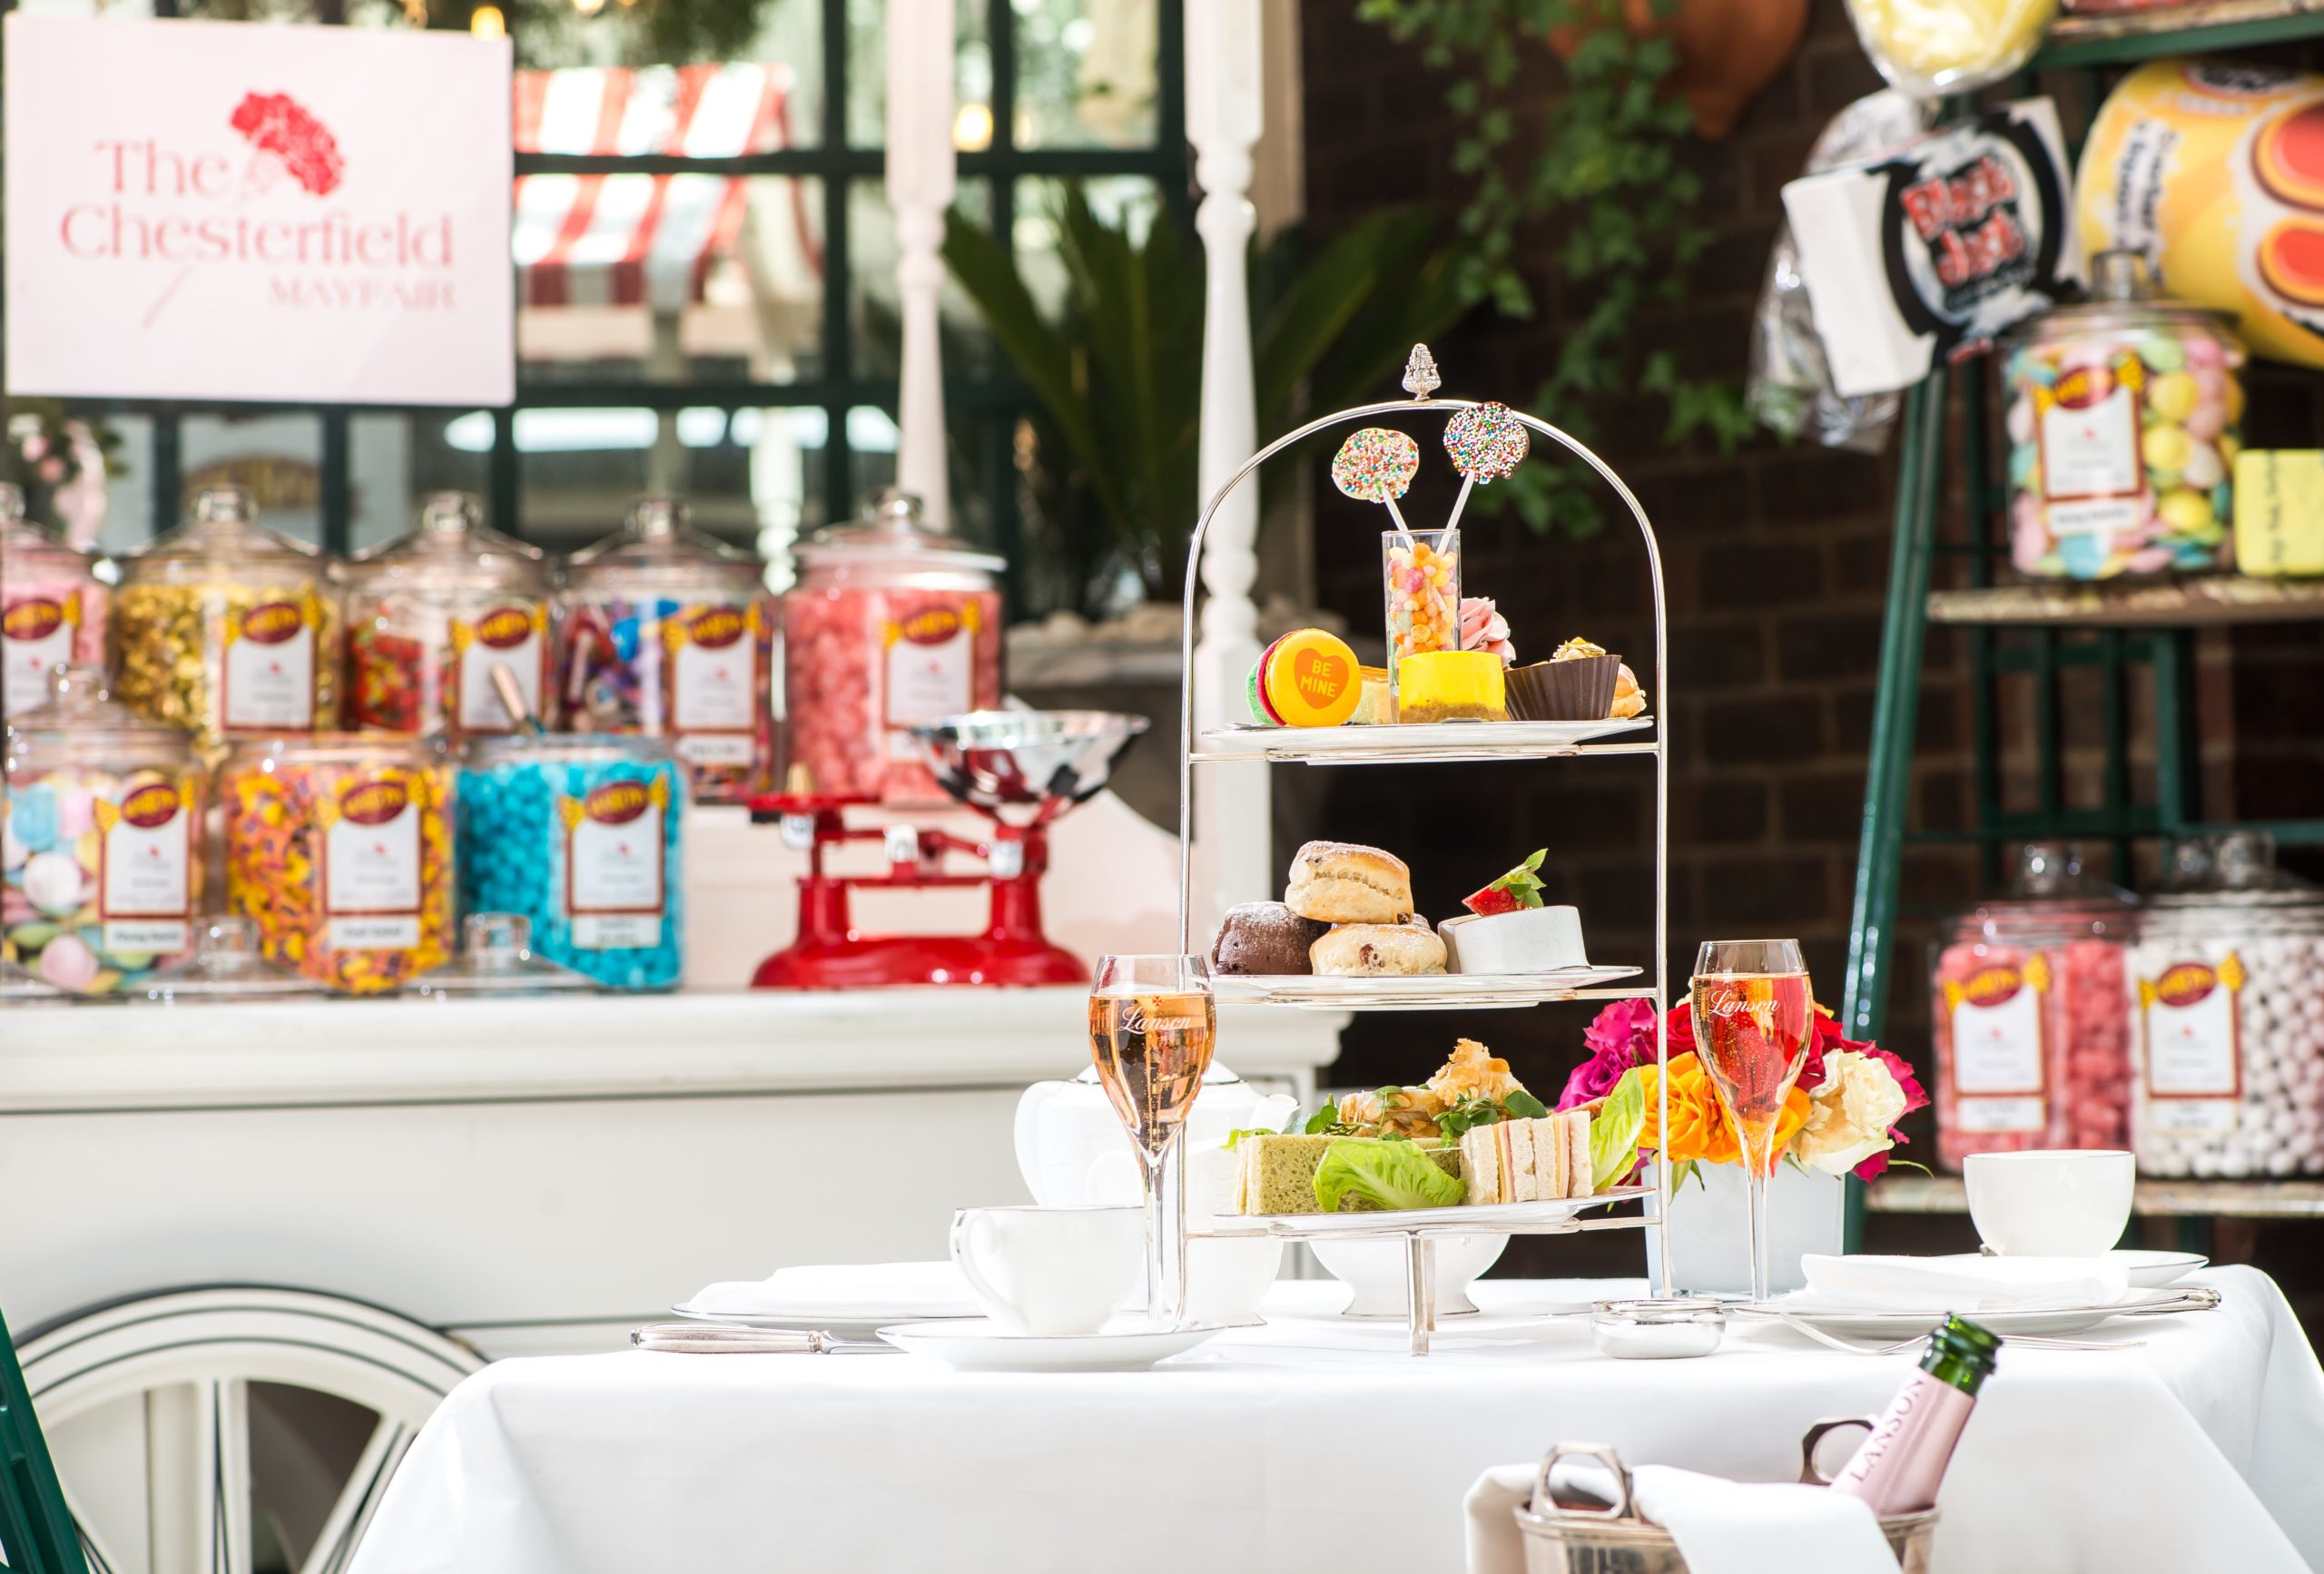 The Chesterfield afternoon tea